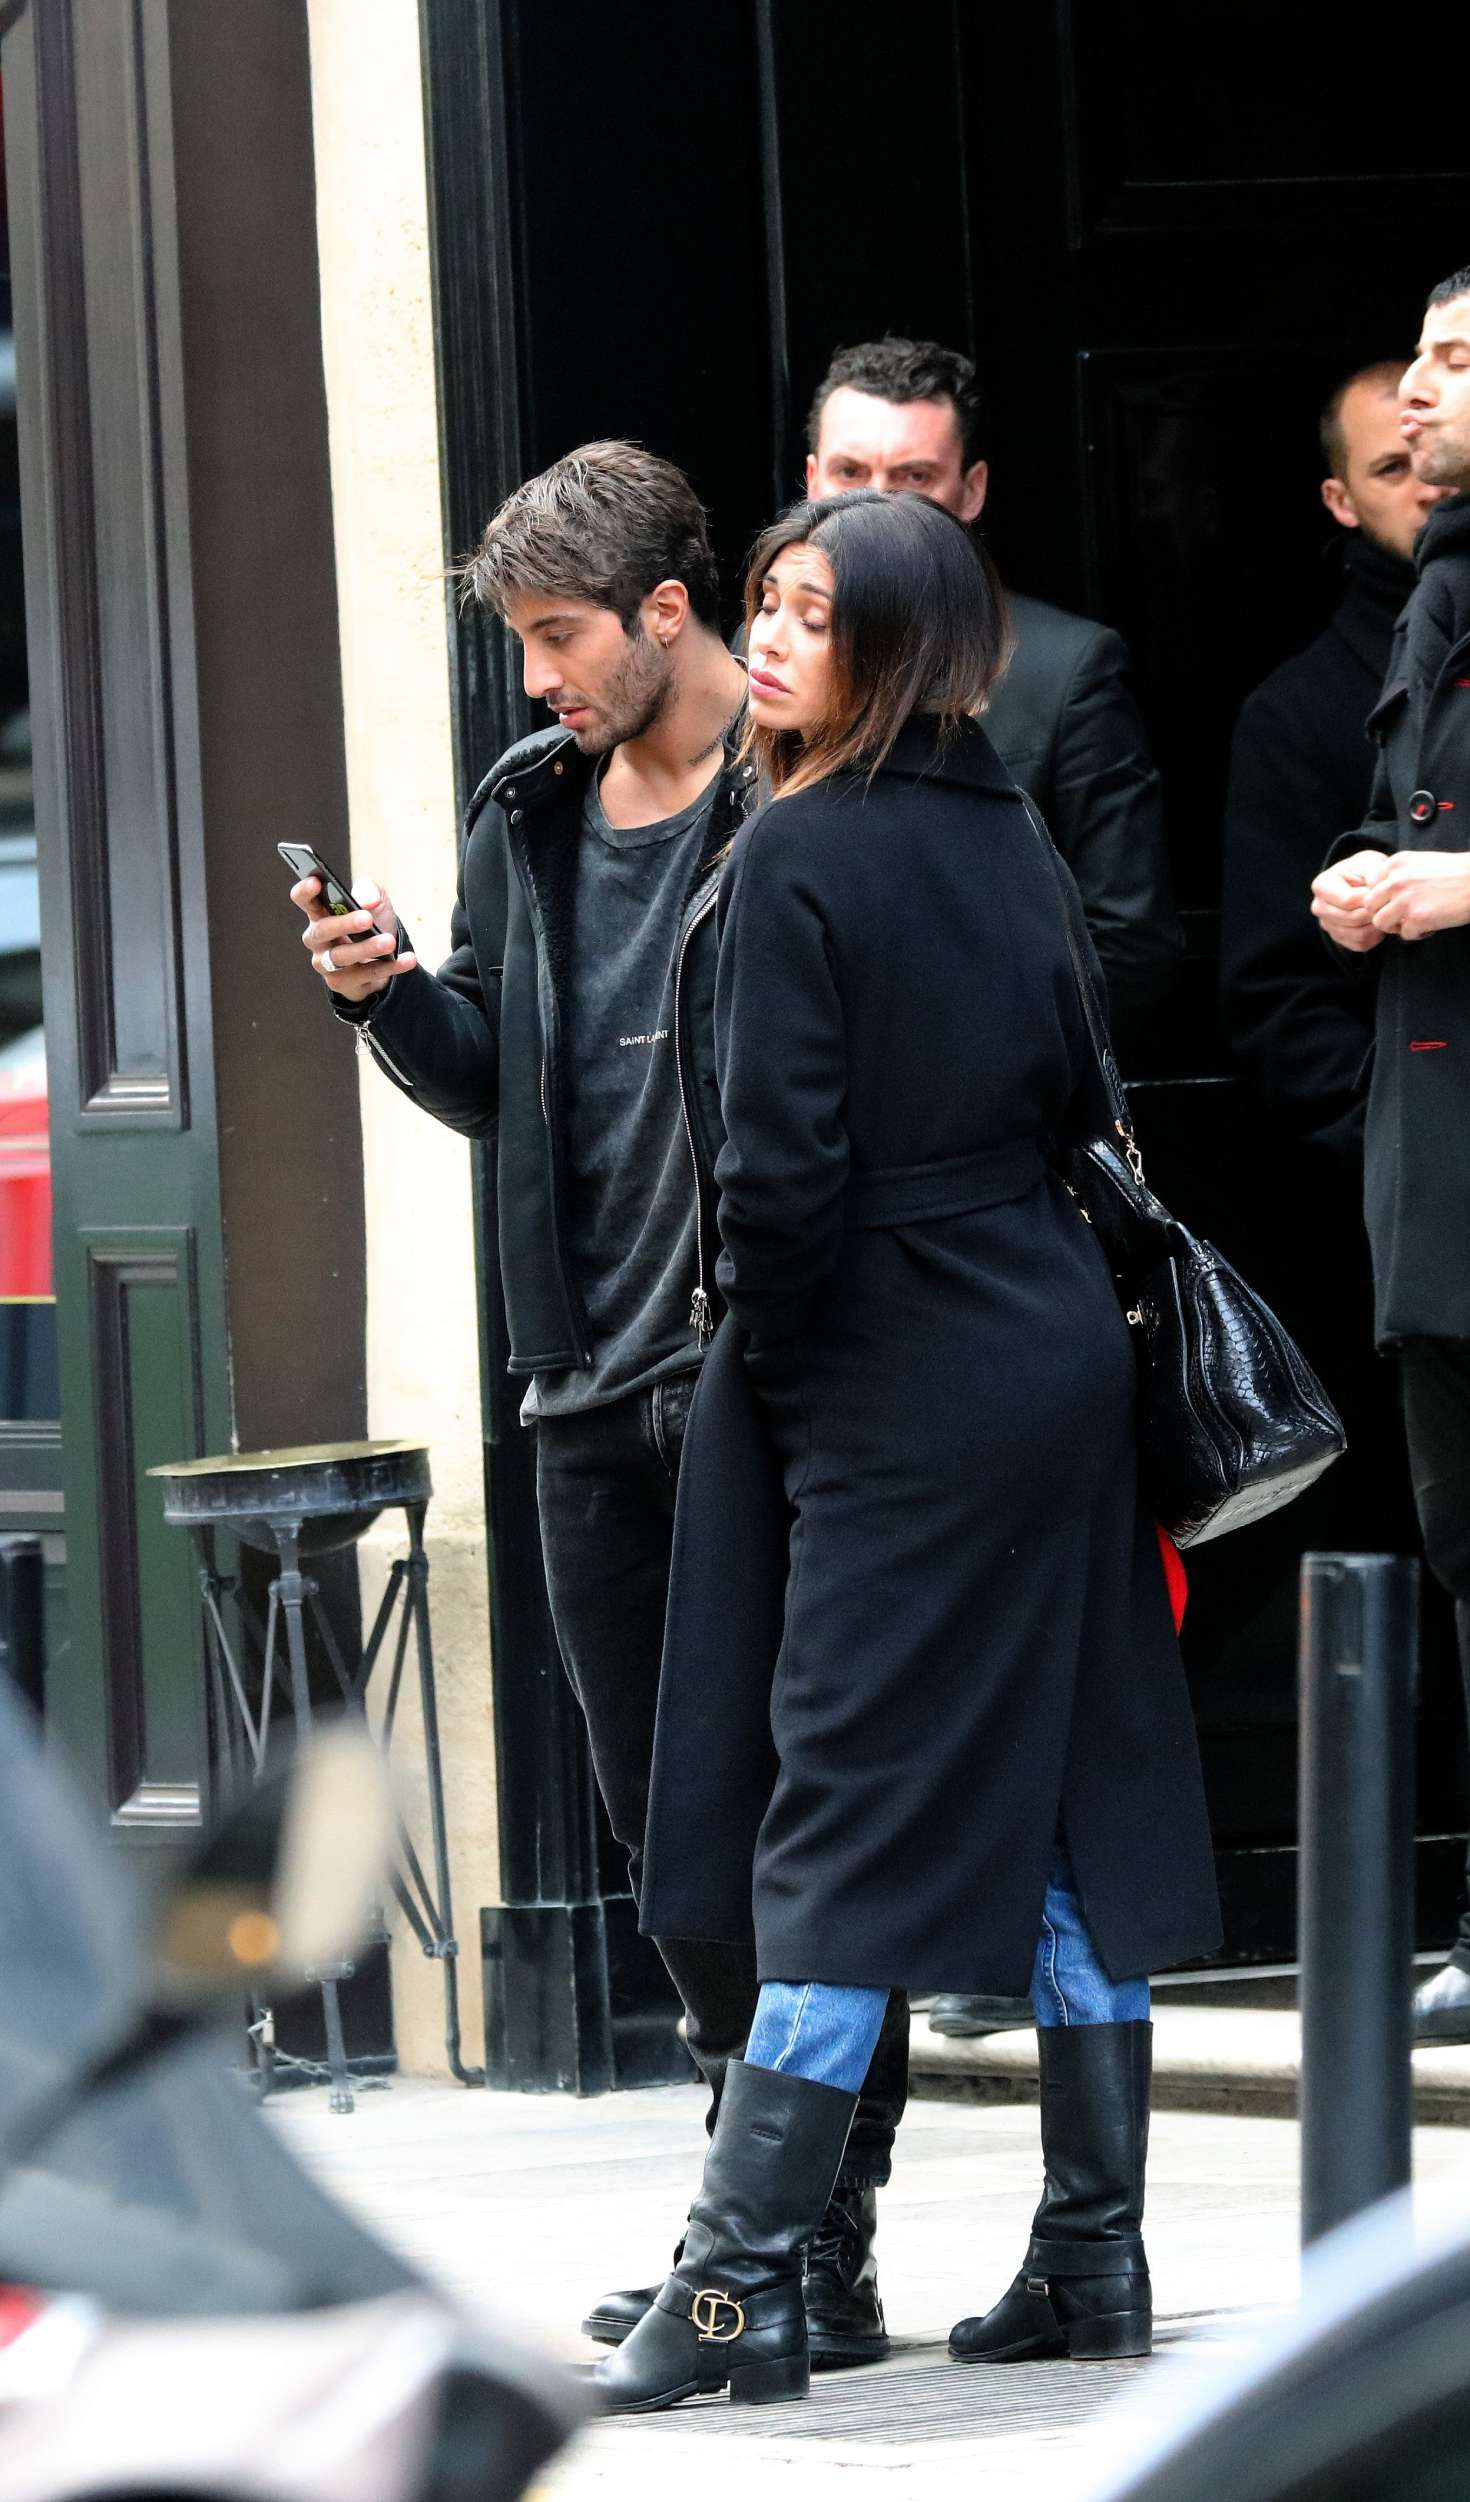 Belen Rodriguez and Andrea Lannone - Leaving their hotel in Paris